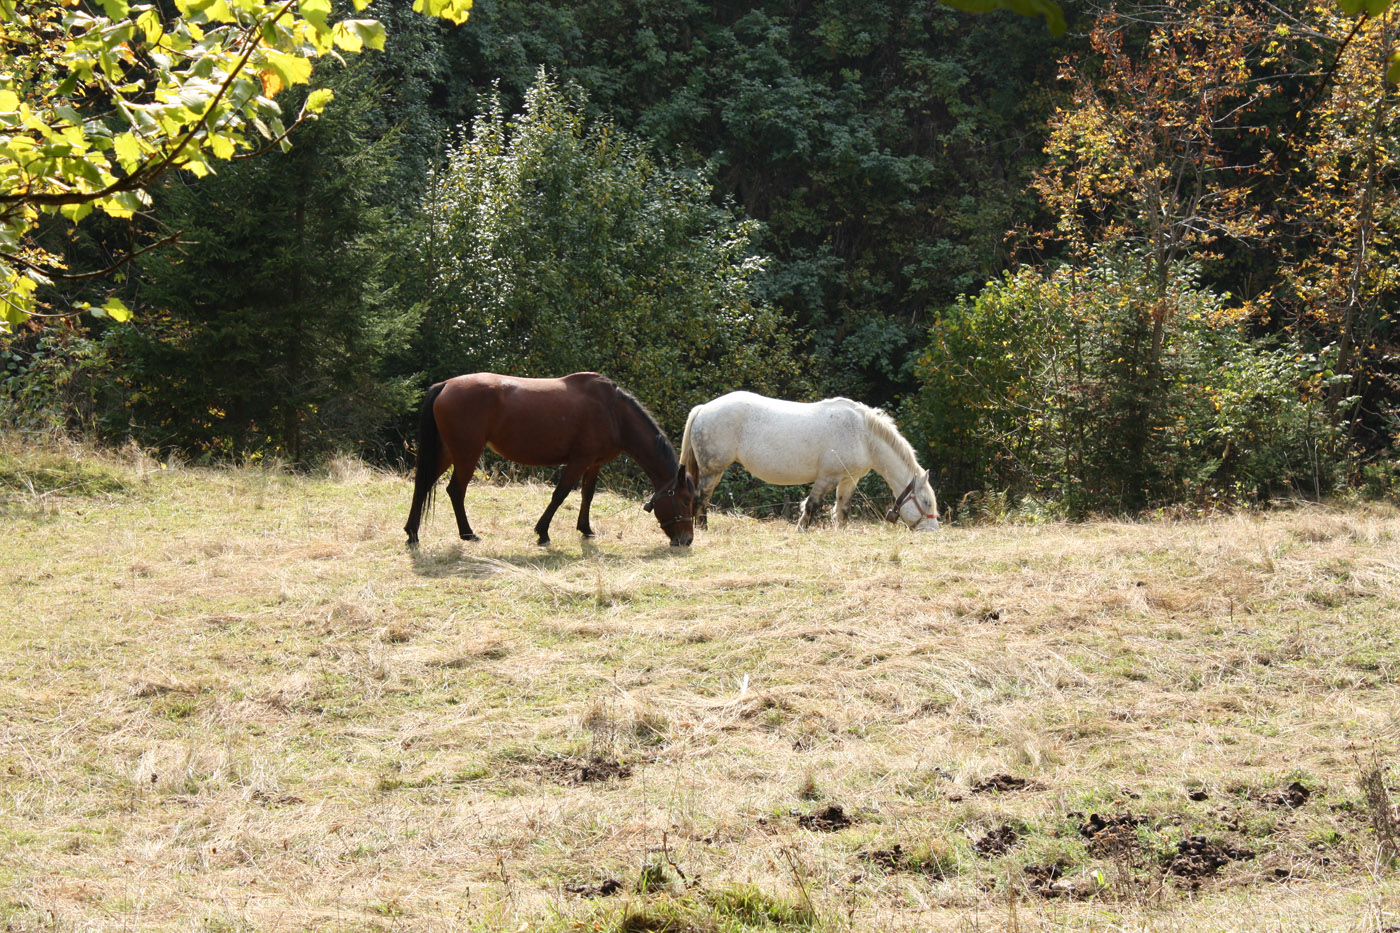 Brown and White Horse on the grass